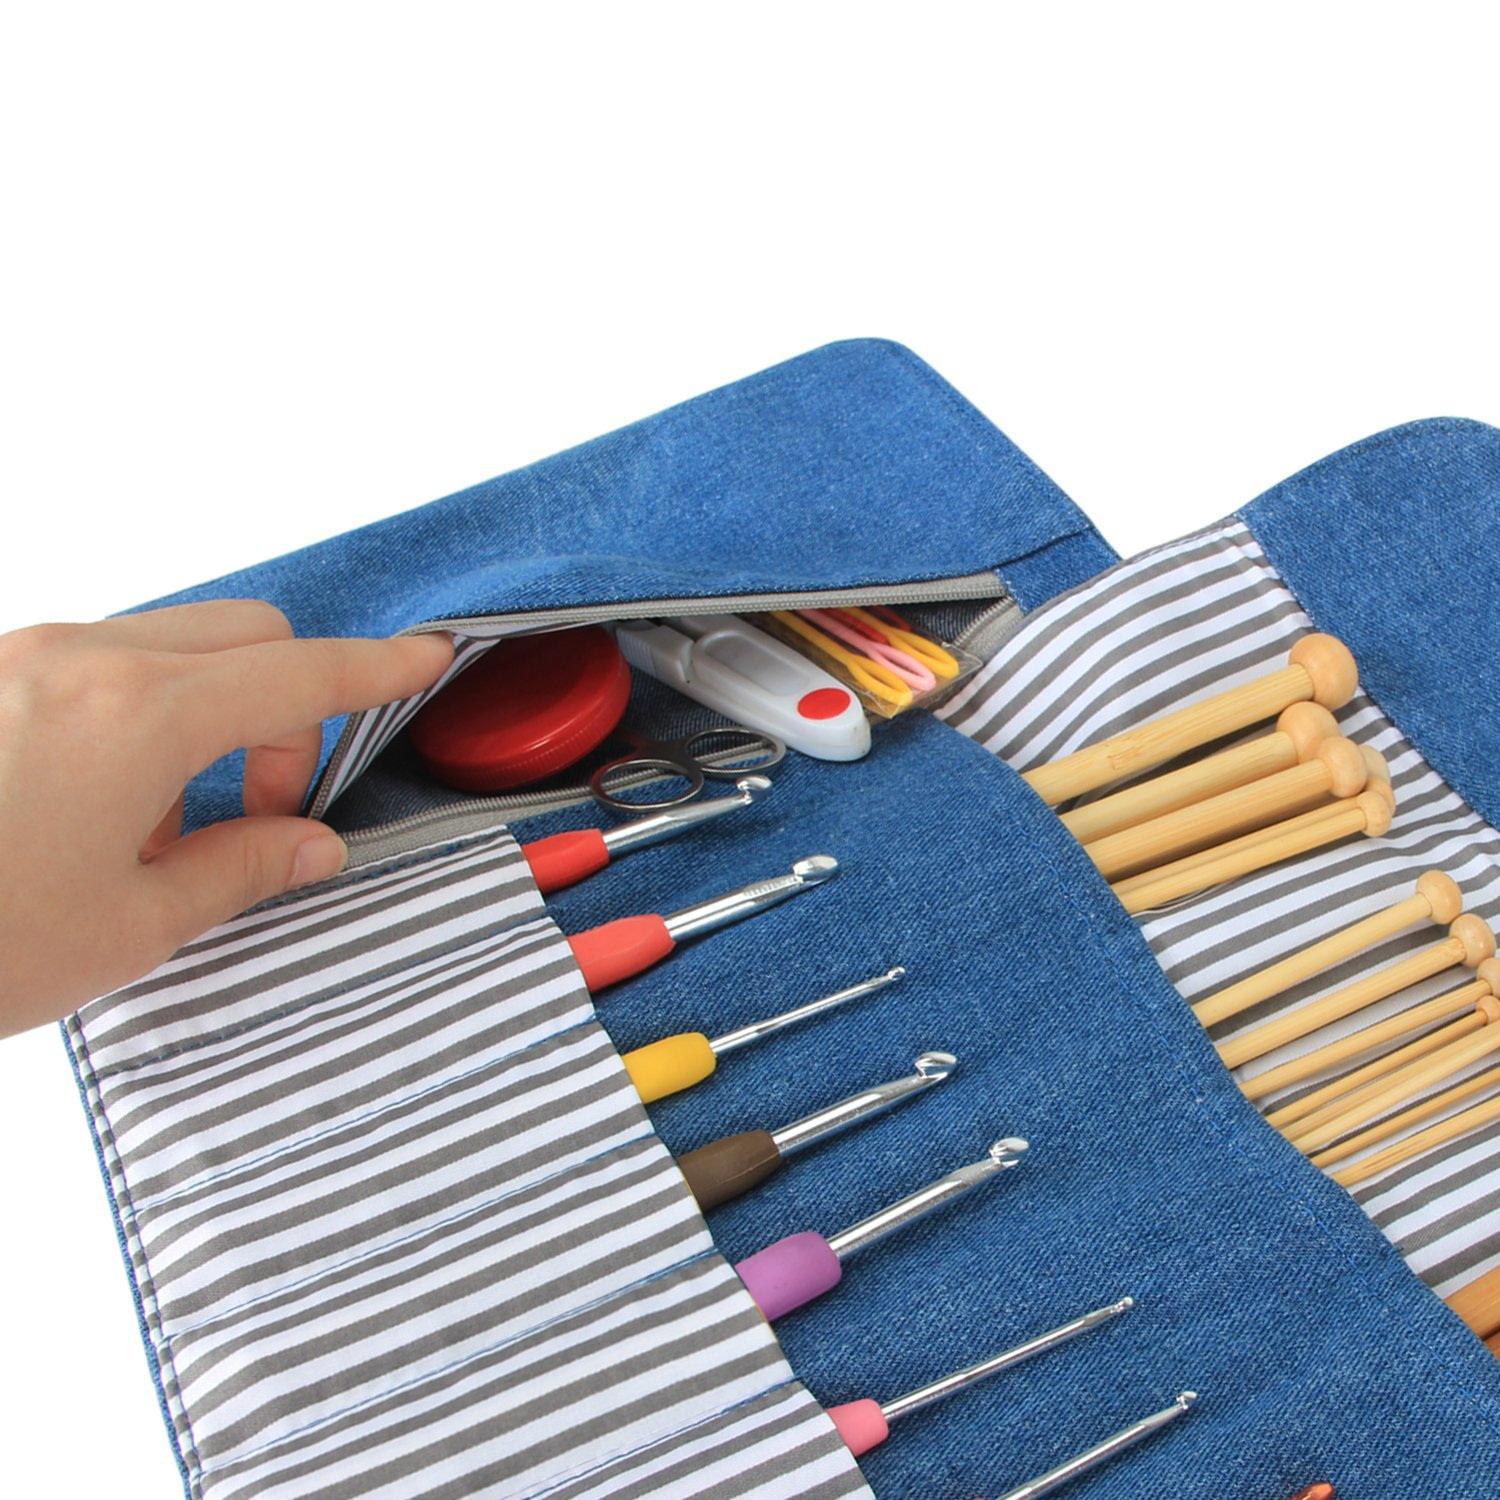 Luxja Knitting Needles Organizer, Rolling Bag for Knitting Needles (up to 10 Inches), Crochet Hooks and Accessories (No Accessories Included), Blue by LUXJA (Image #4)